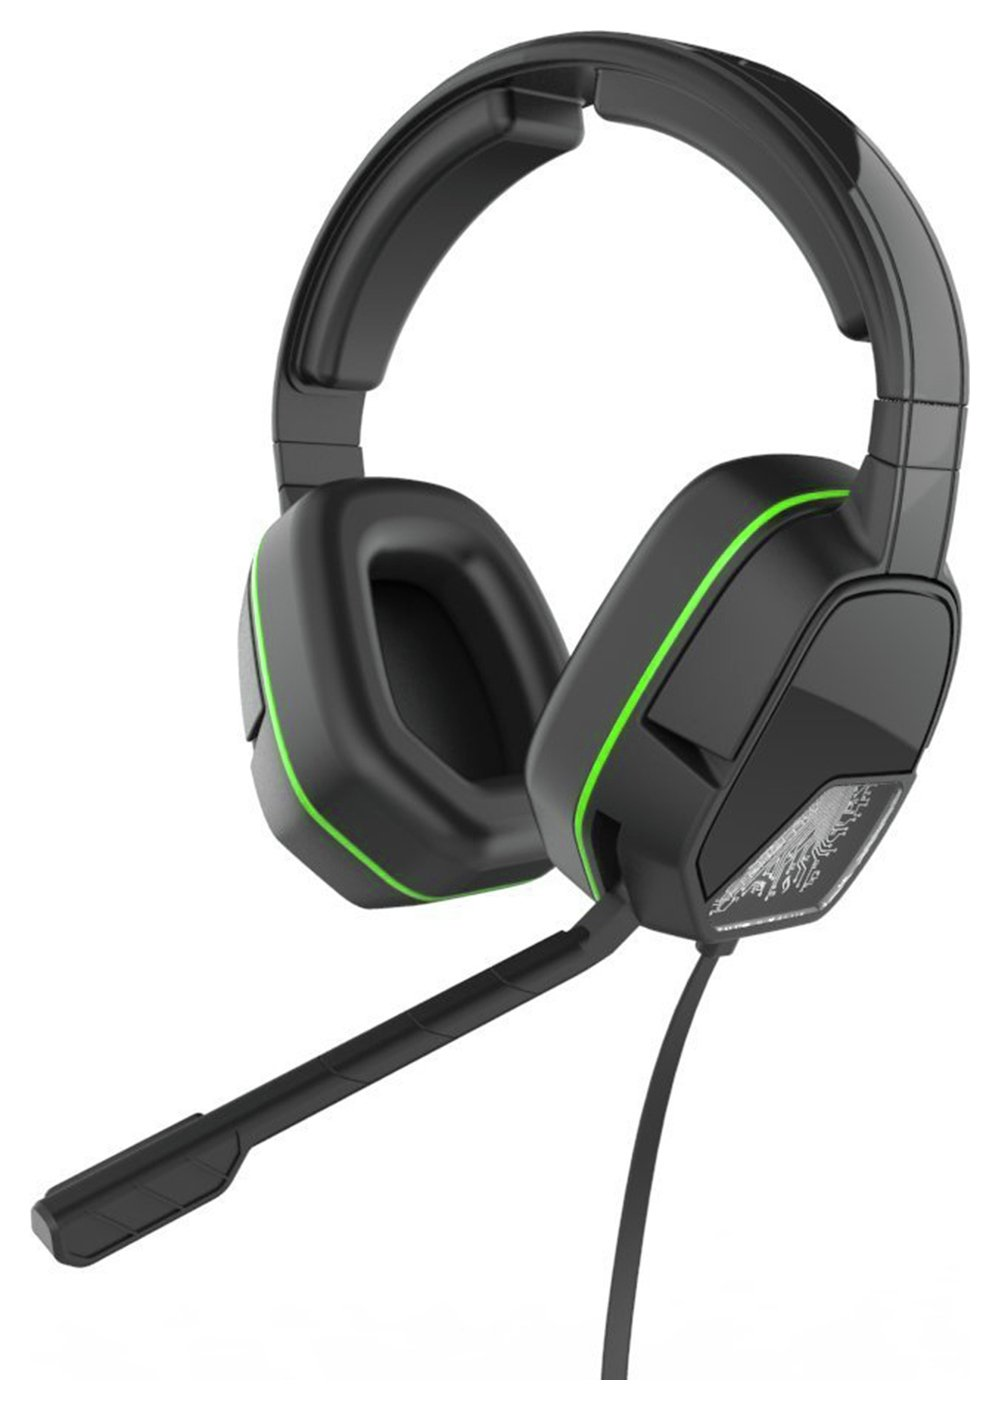 Image of Afterglow LVL 3 Wired Gaming Headset for Xbox One